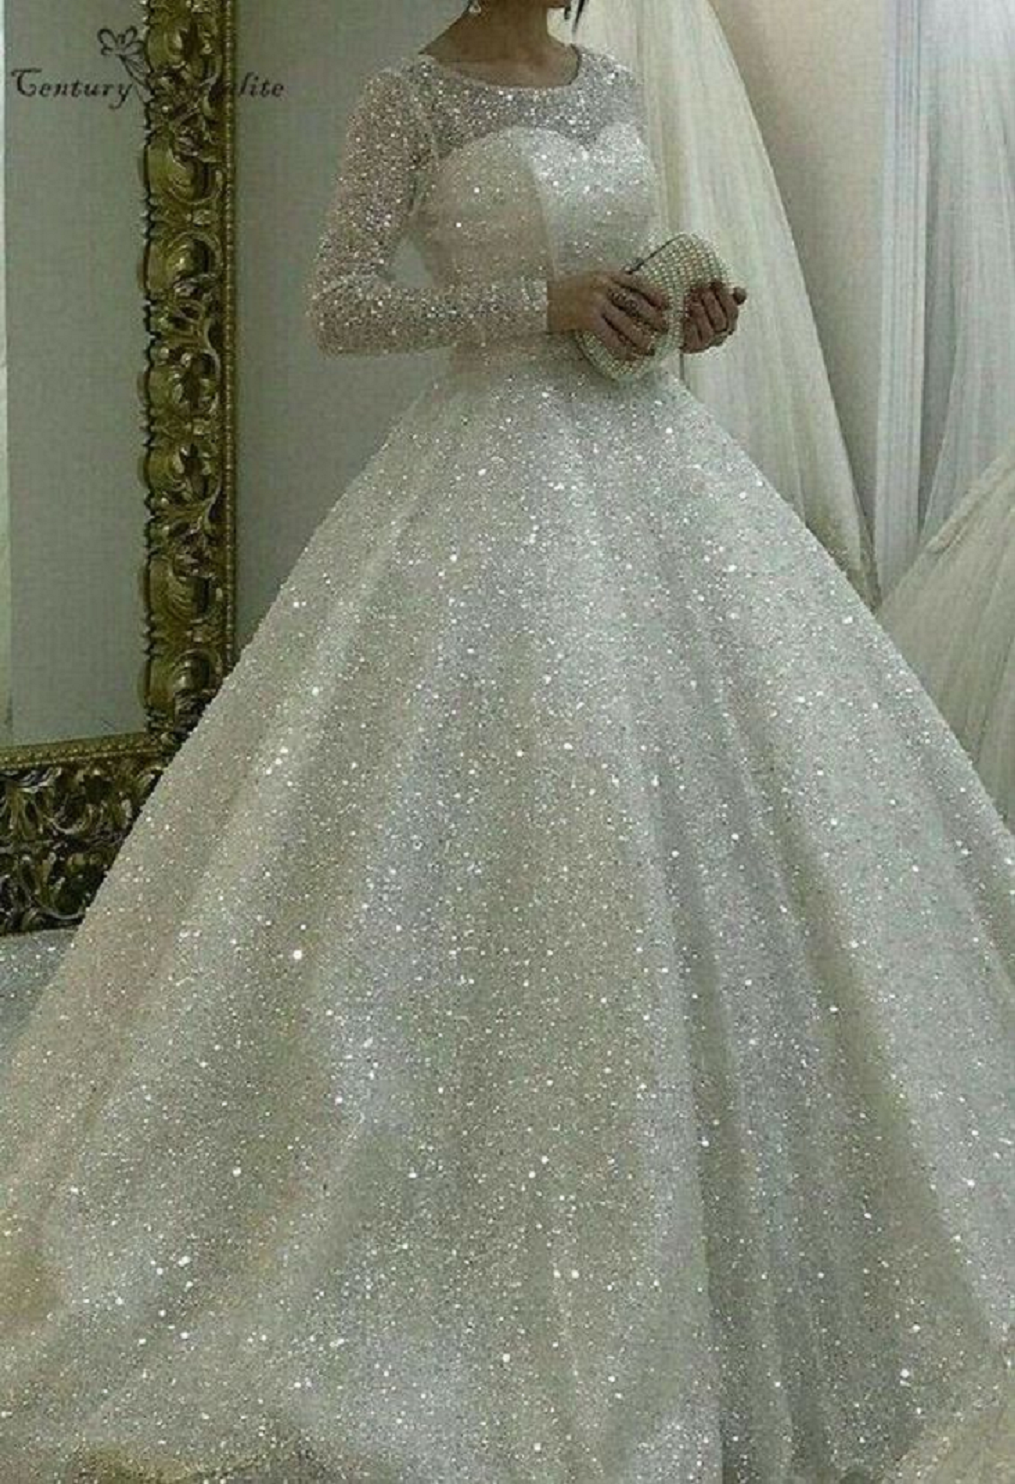 Long Sleeves, Classic Neckline Glittering Bridal Gown